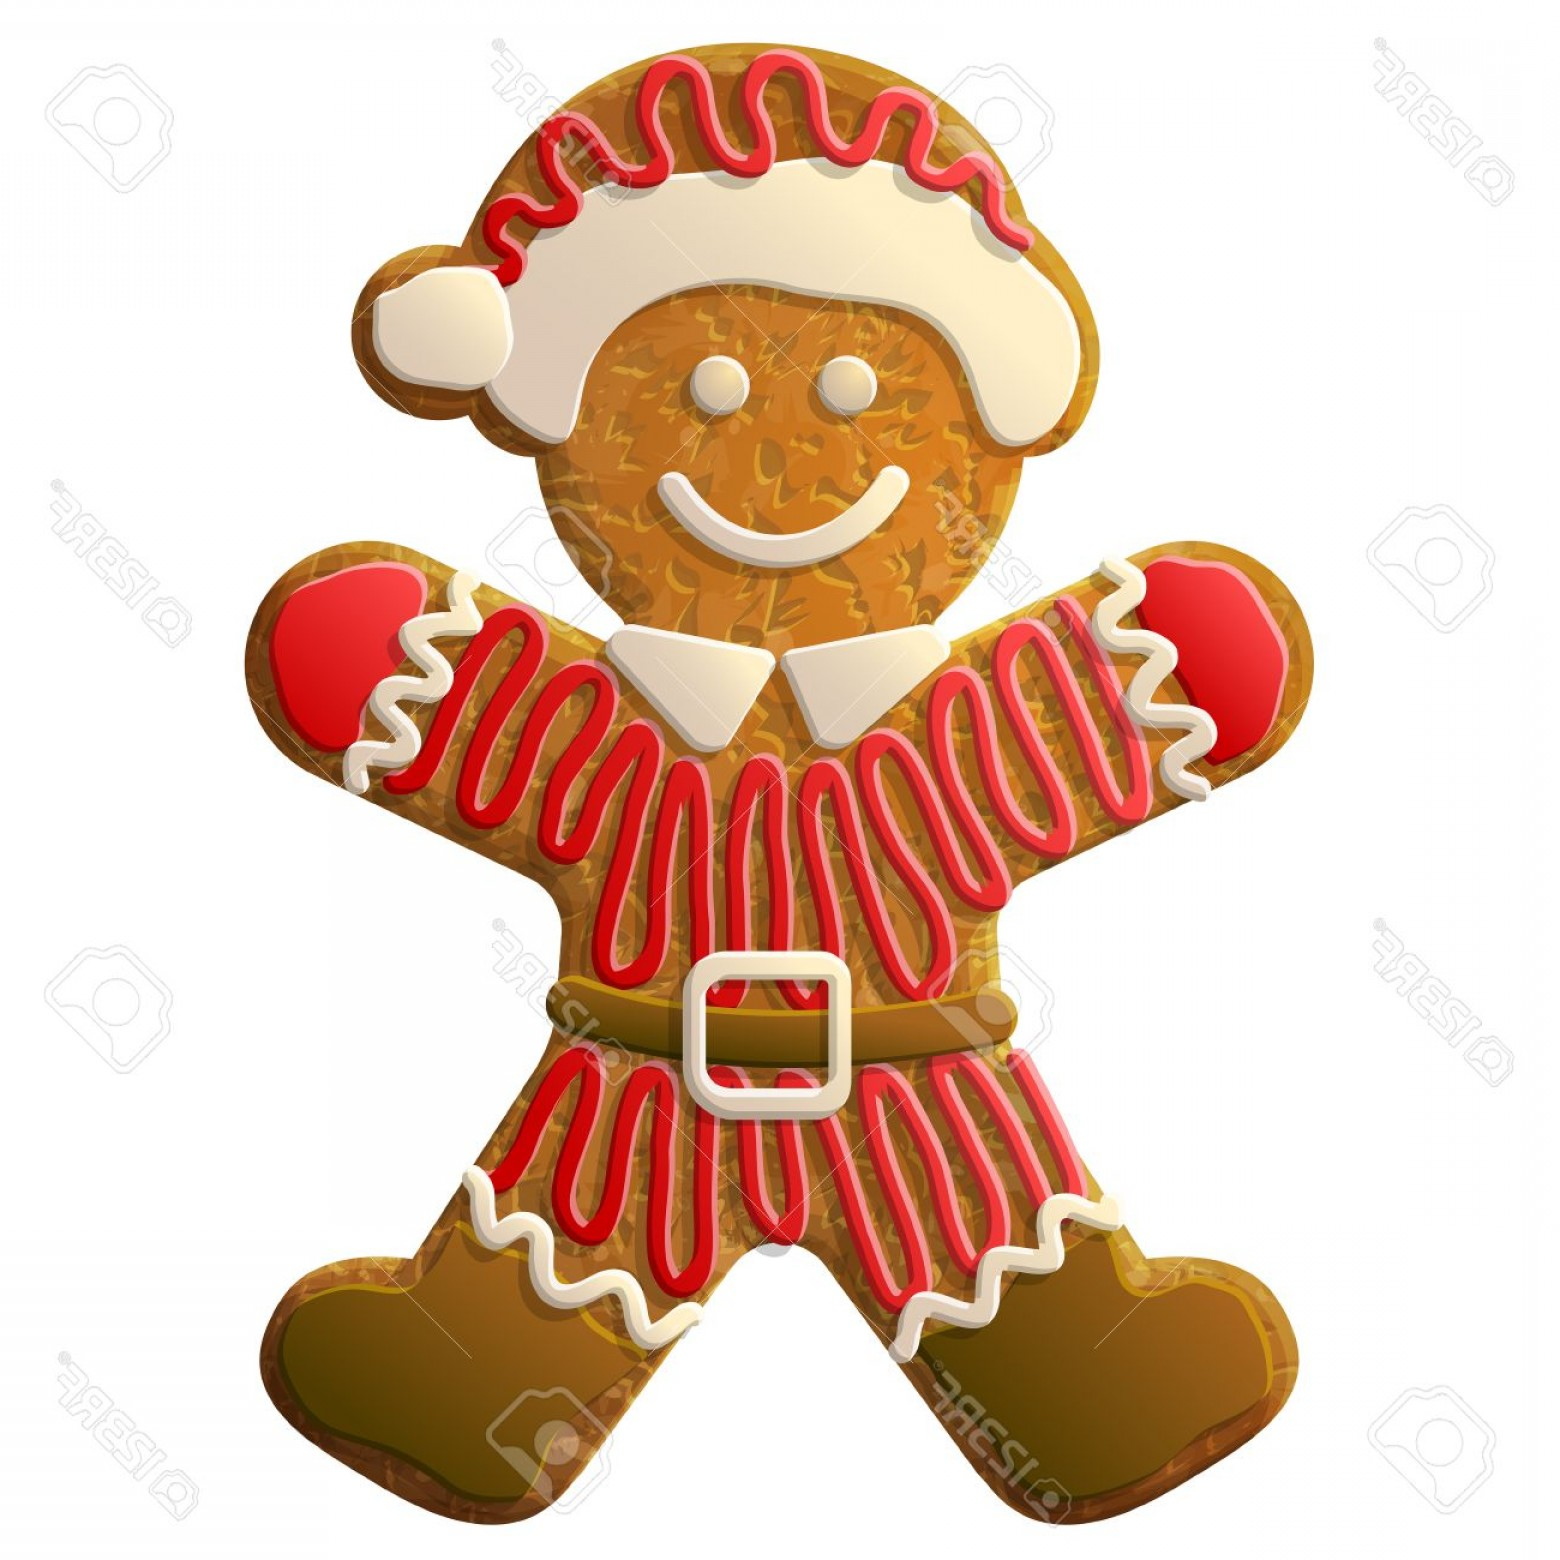 Vectors Holiday Baking: Photostock Vector Gingerbread Man Dressed In Santa Claus Suit Holiday Cookie In Shape Of Man Decorated Colored Icing Q